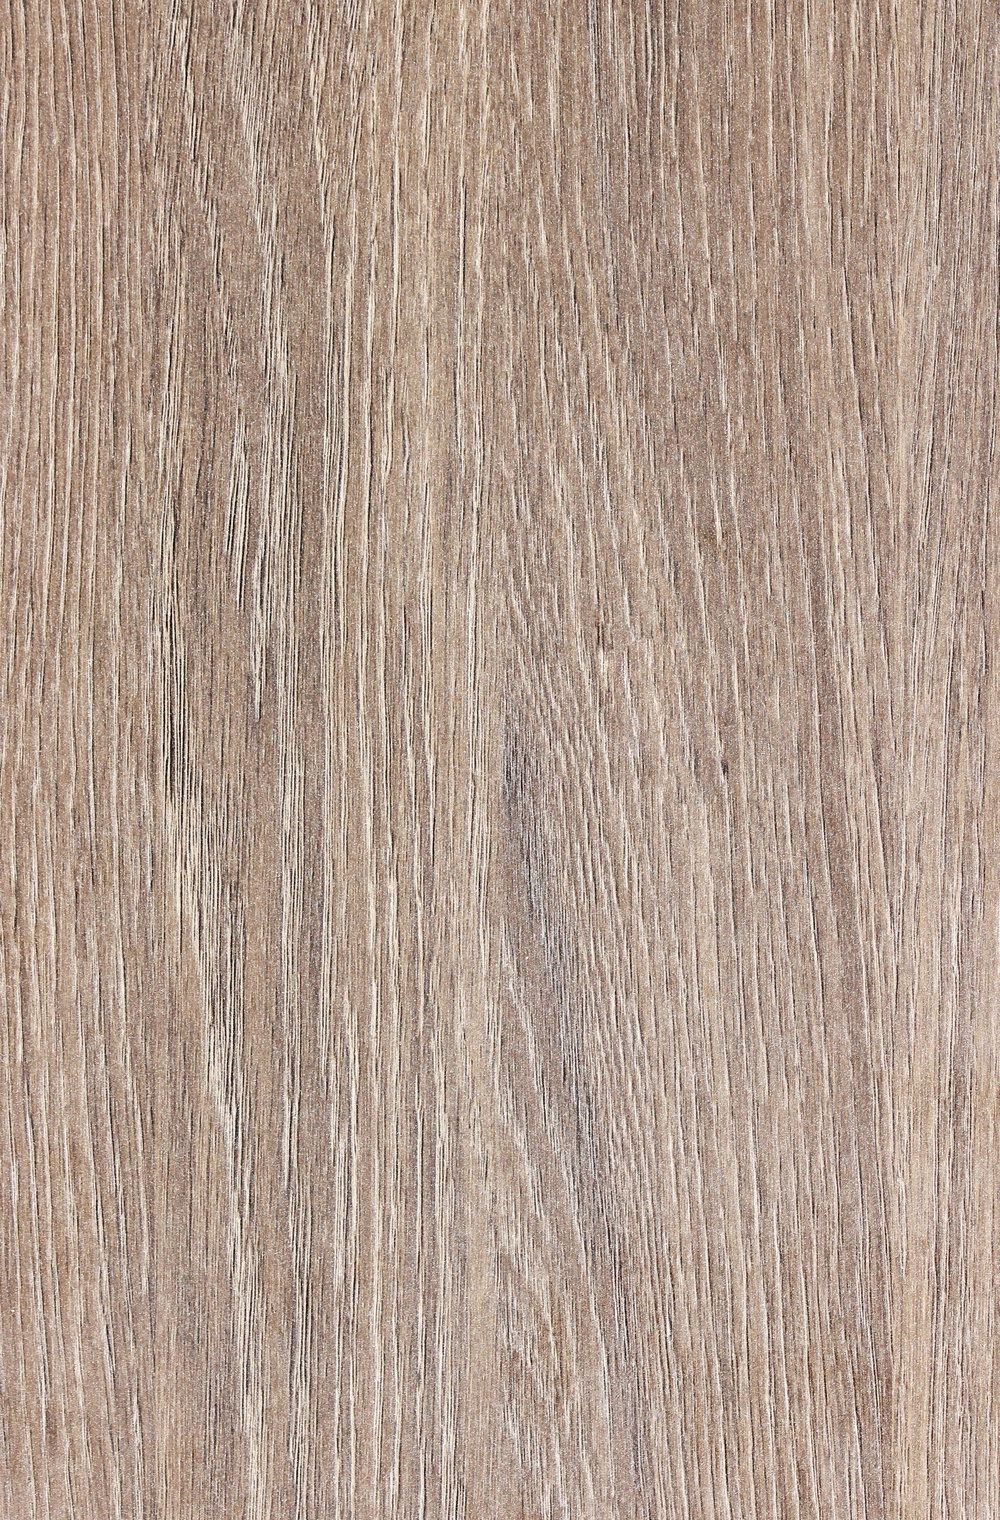 KR - K007  Coffee Urban Oak  - 22 x 1 mm